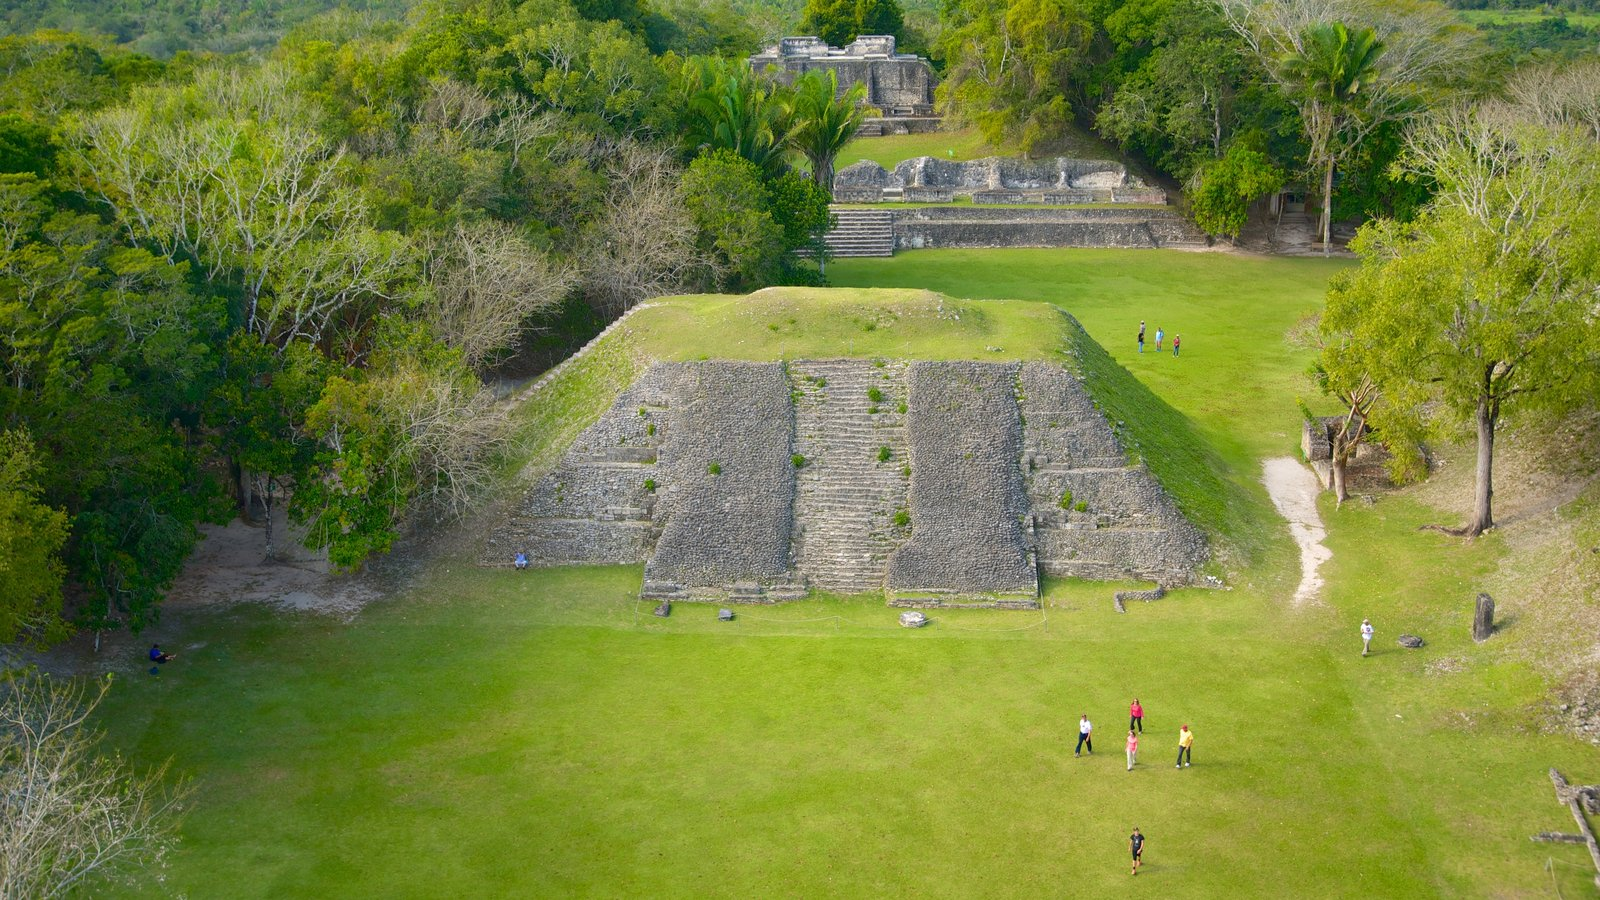 Xunantunich which includes forest scenes, heritage elements and a monument